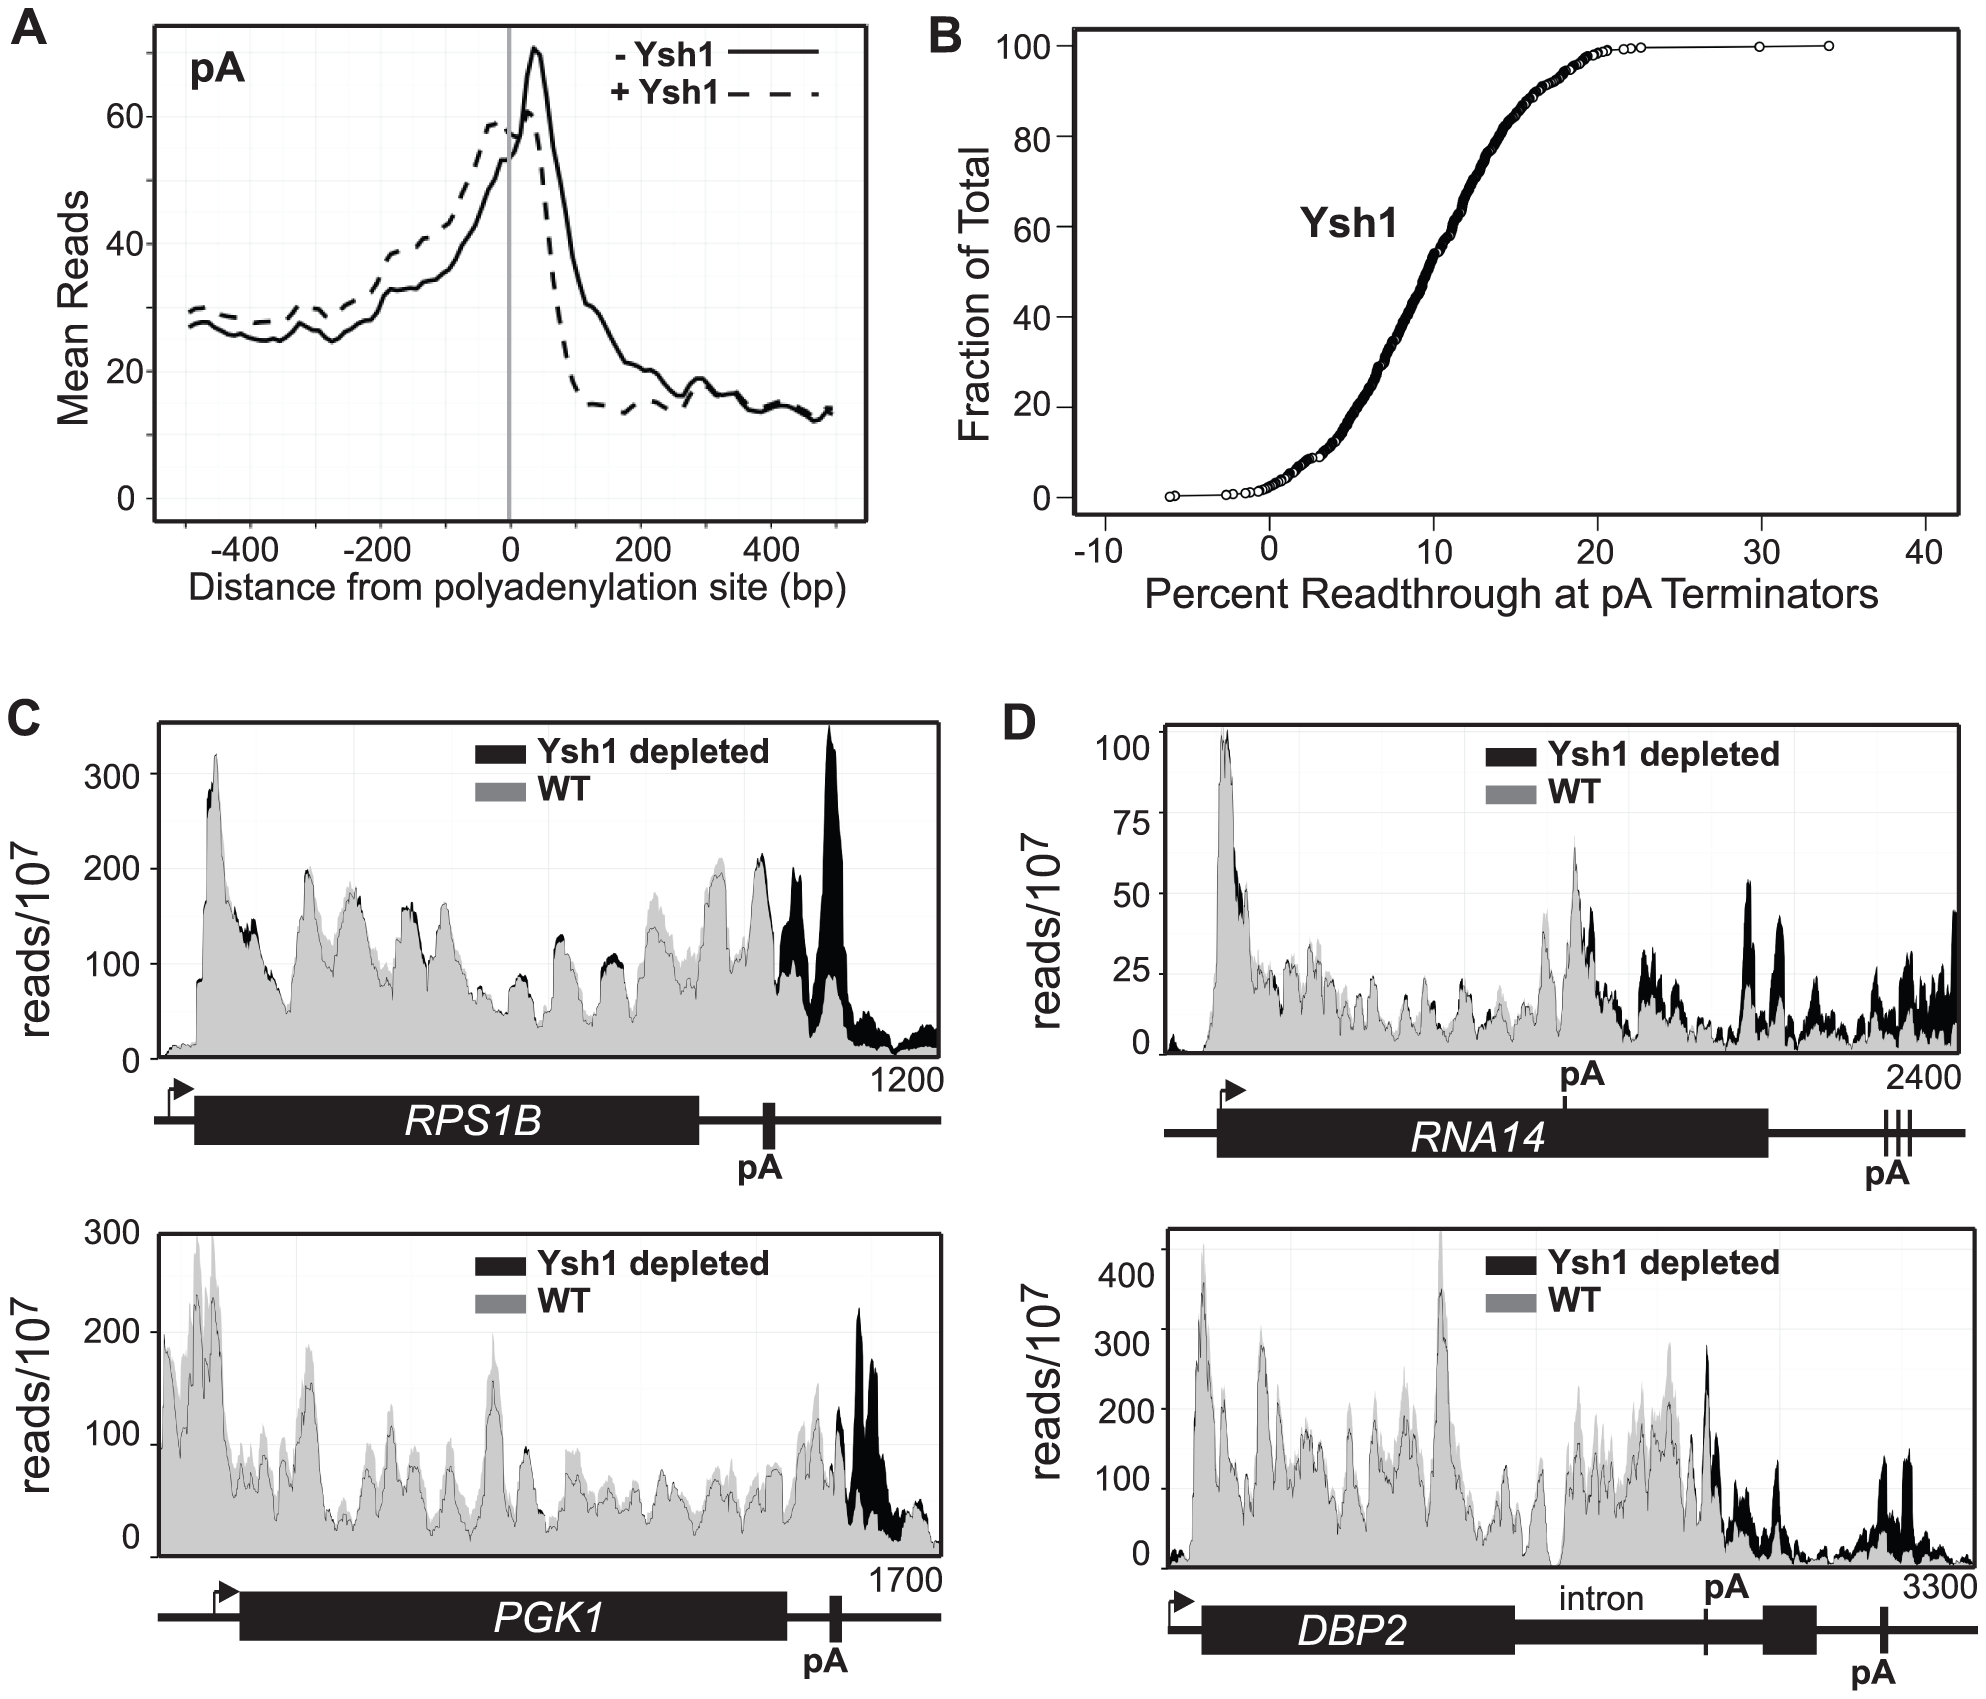 Ysh1 depletion causes readthrough at pA sites.